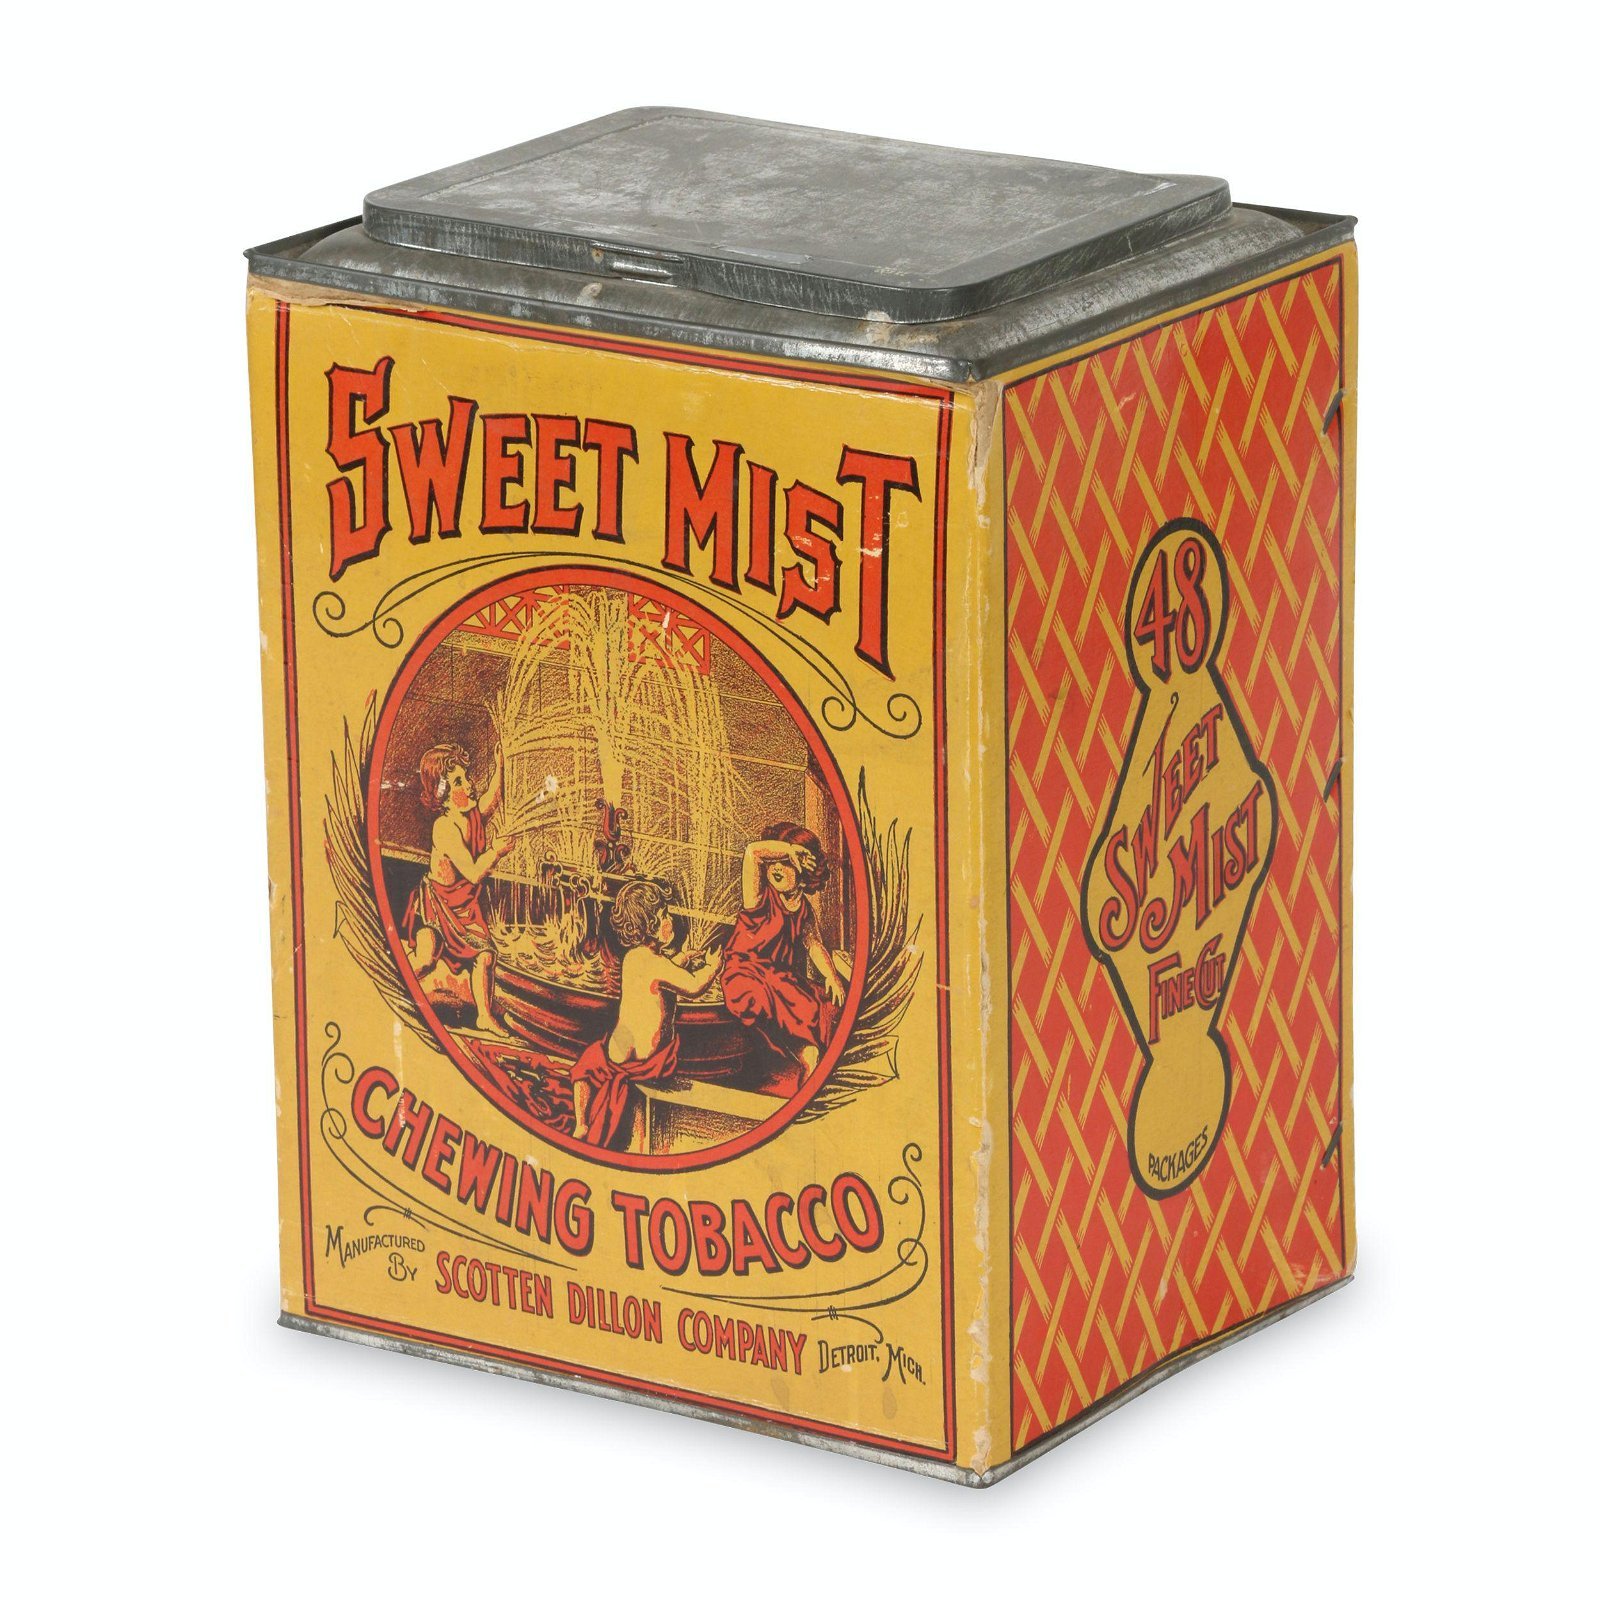 Sweet Mist Chewing Tobacco Store Canister